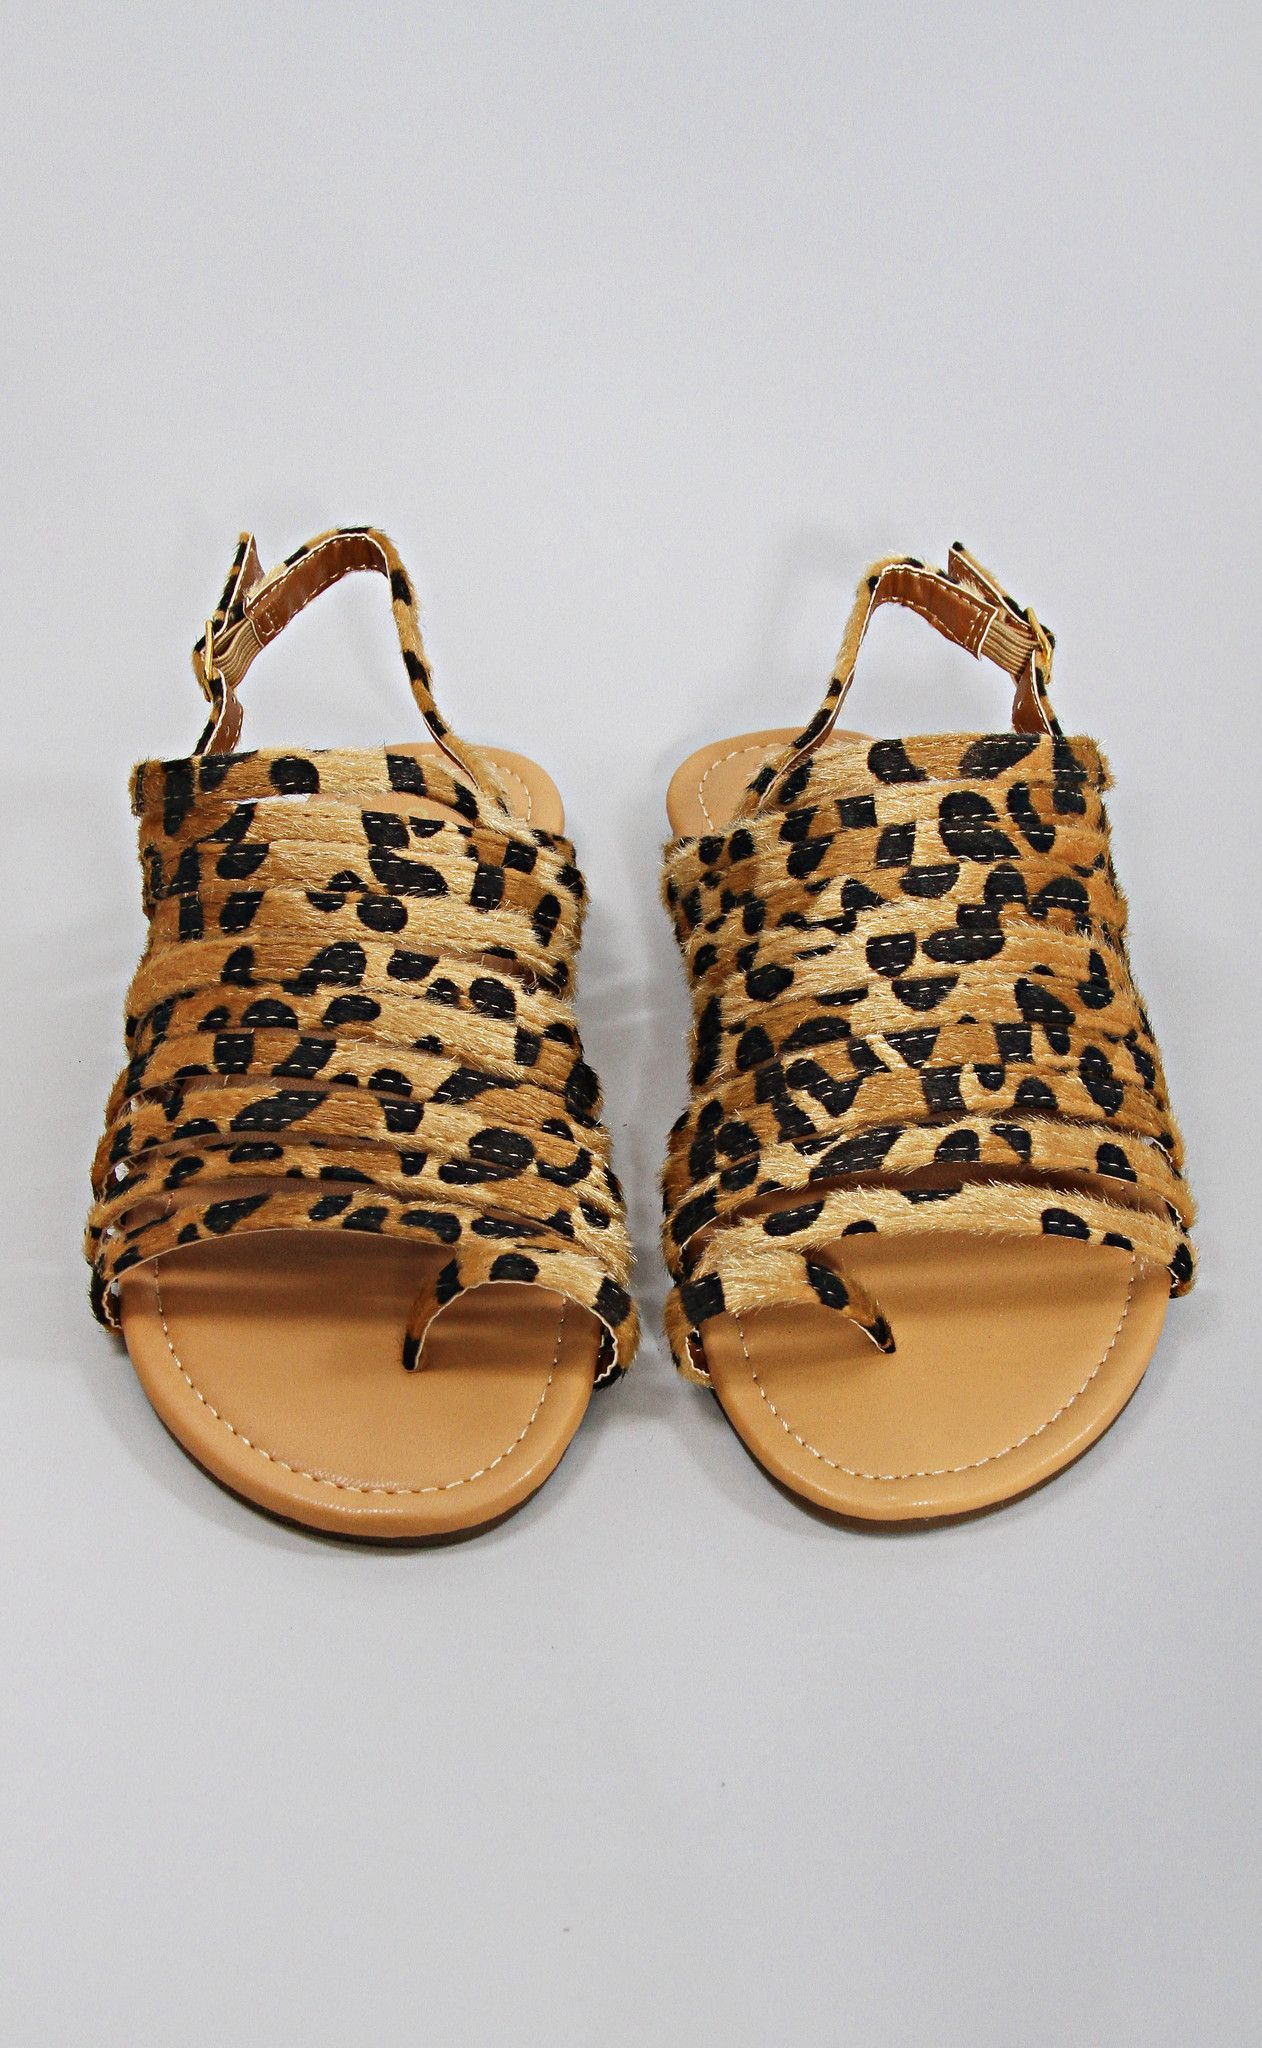 4240238a6e4 so much strappy sandal - leopard